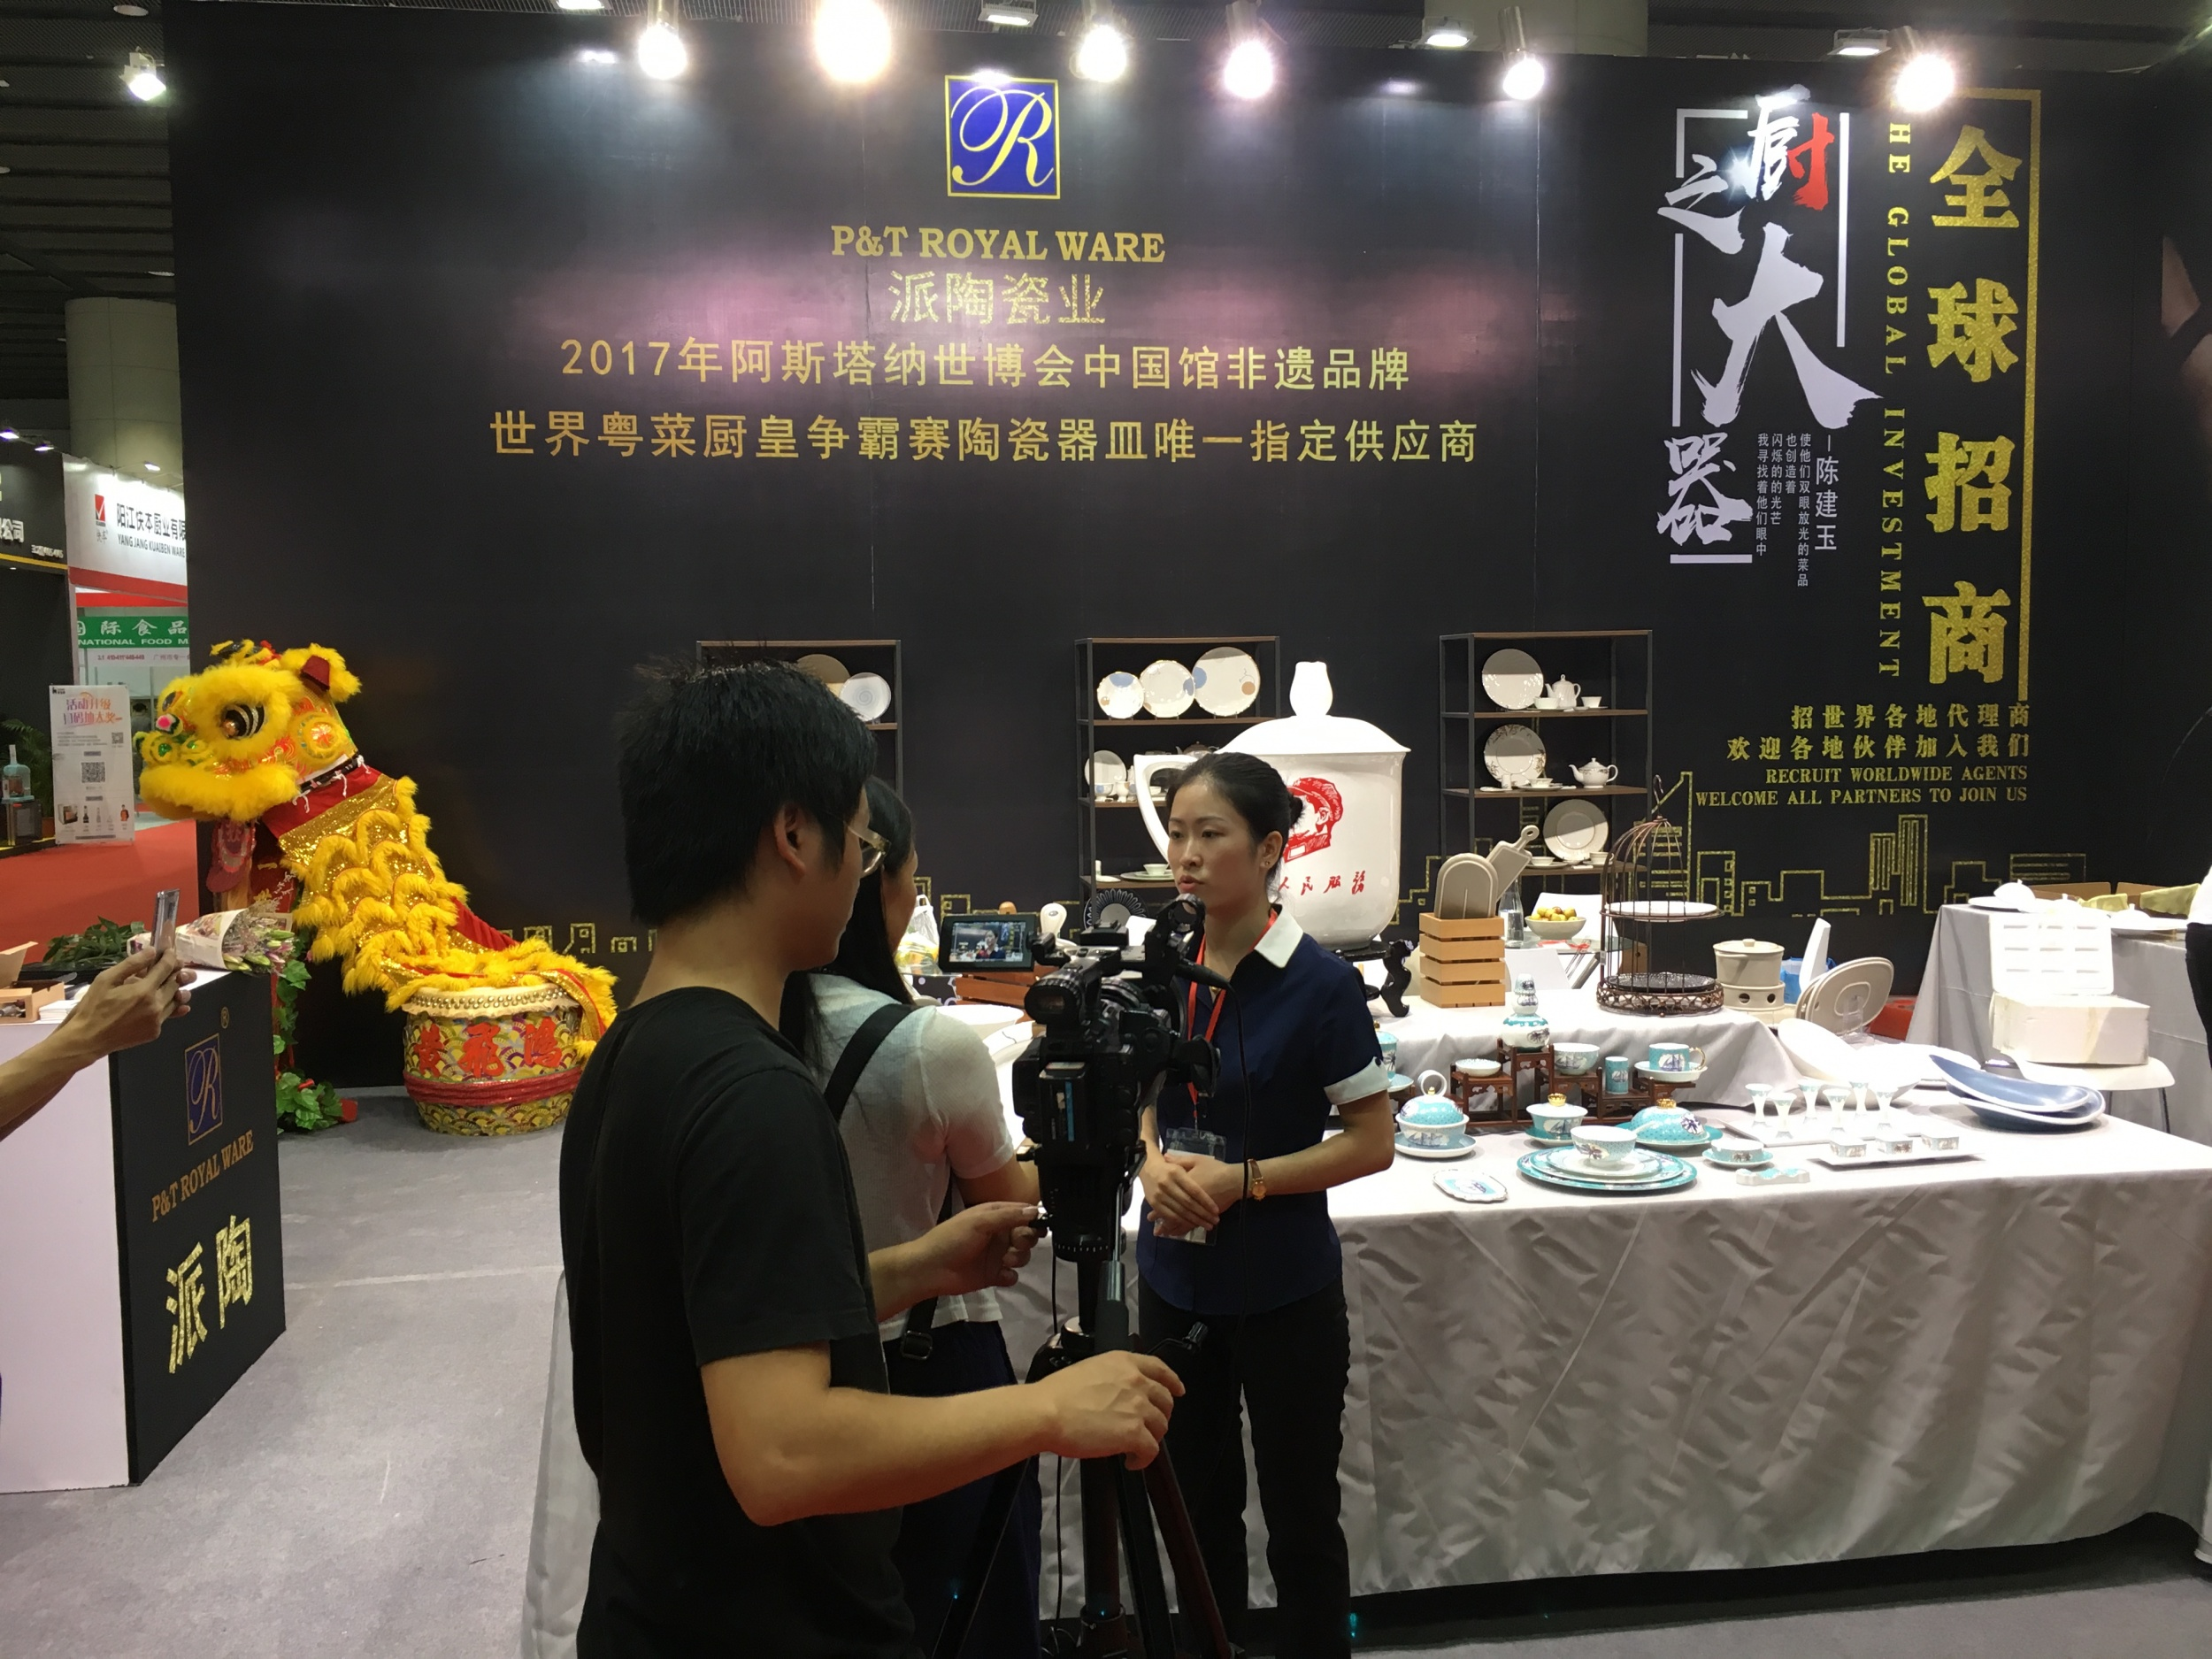 Guangzhou pazhou expo exhibition opened today, paitao gastronomy beautiful ware wonderful appearance